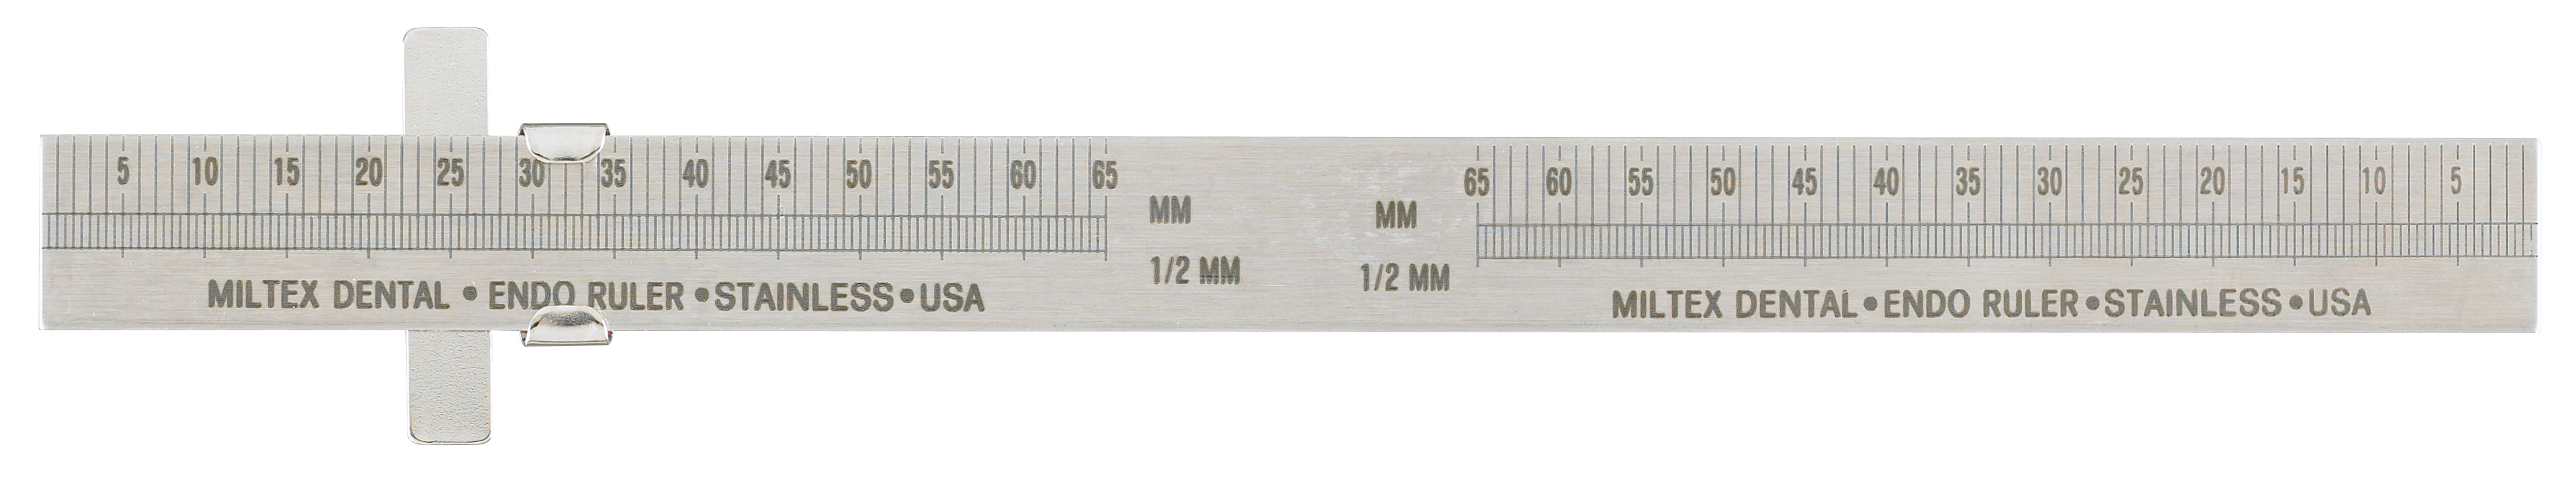 Actual Size Ruler Mm Stainless steel ruler